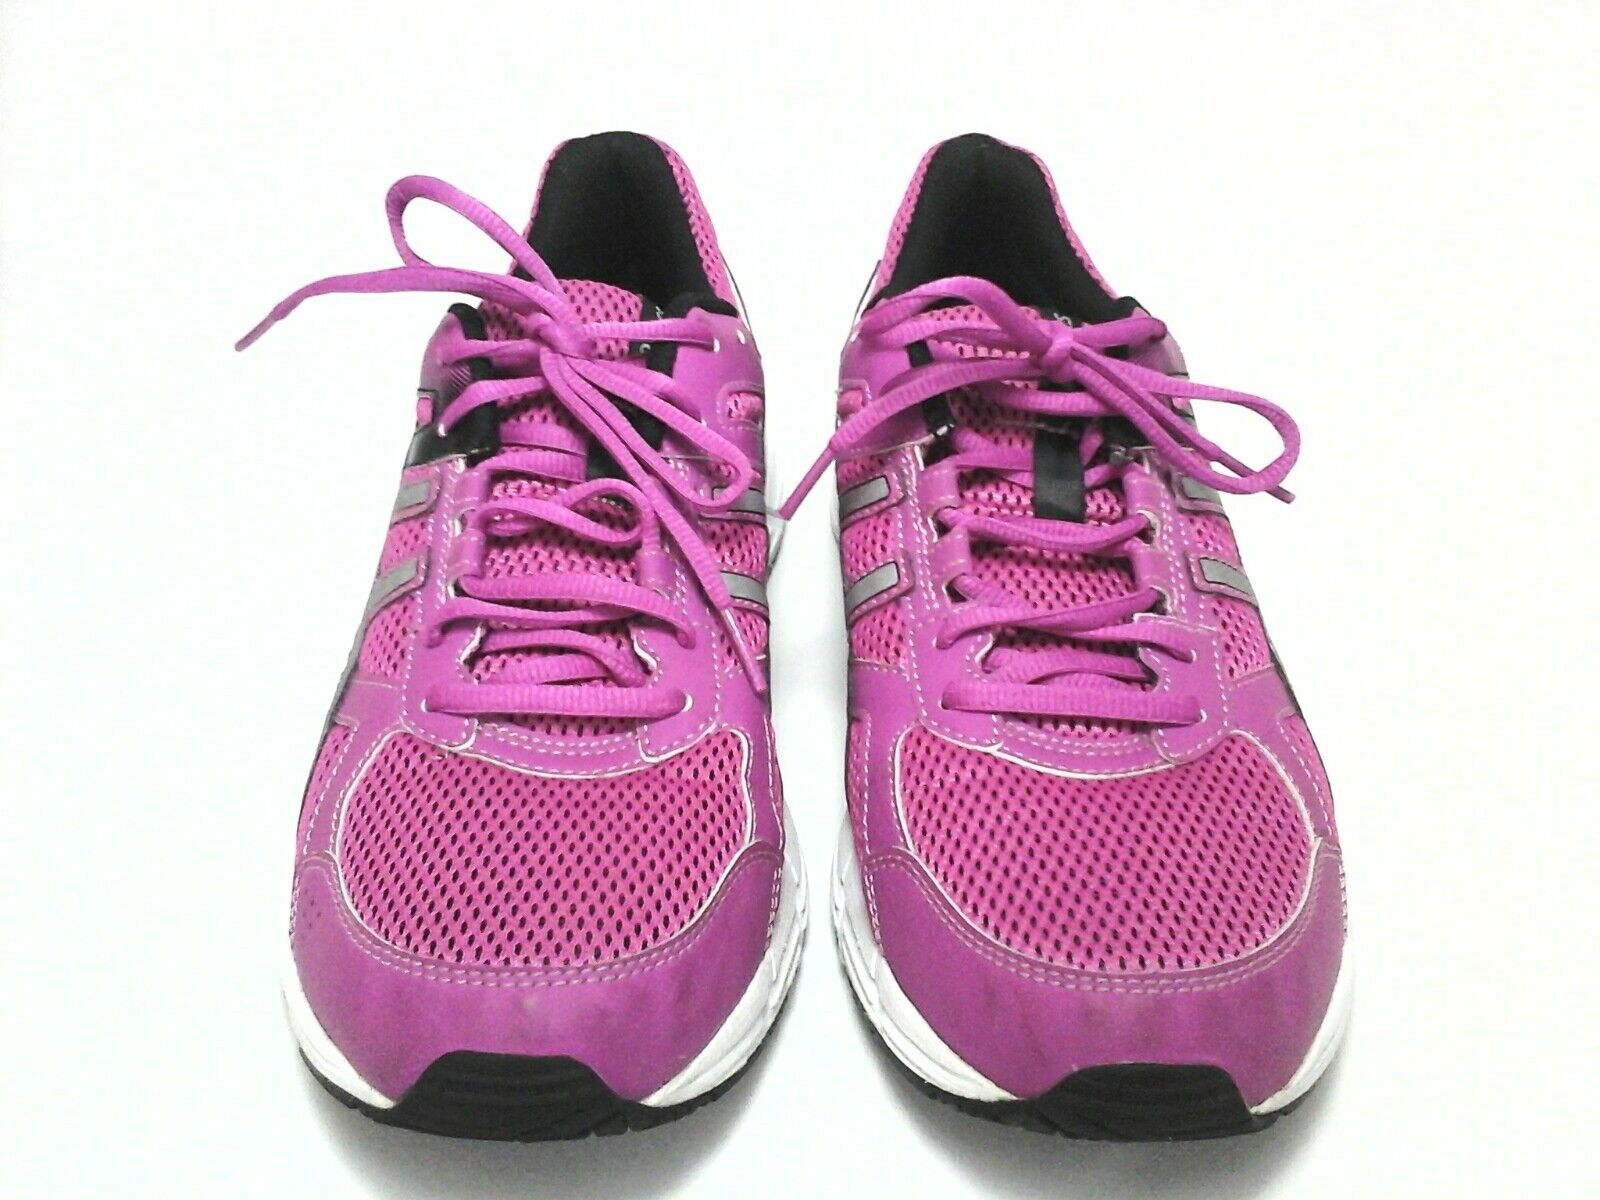 ASICS GEL ESSENT 2 Womens Sneakers PINK Athletic Shoes Running US 12 EU  44.5 EUC